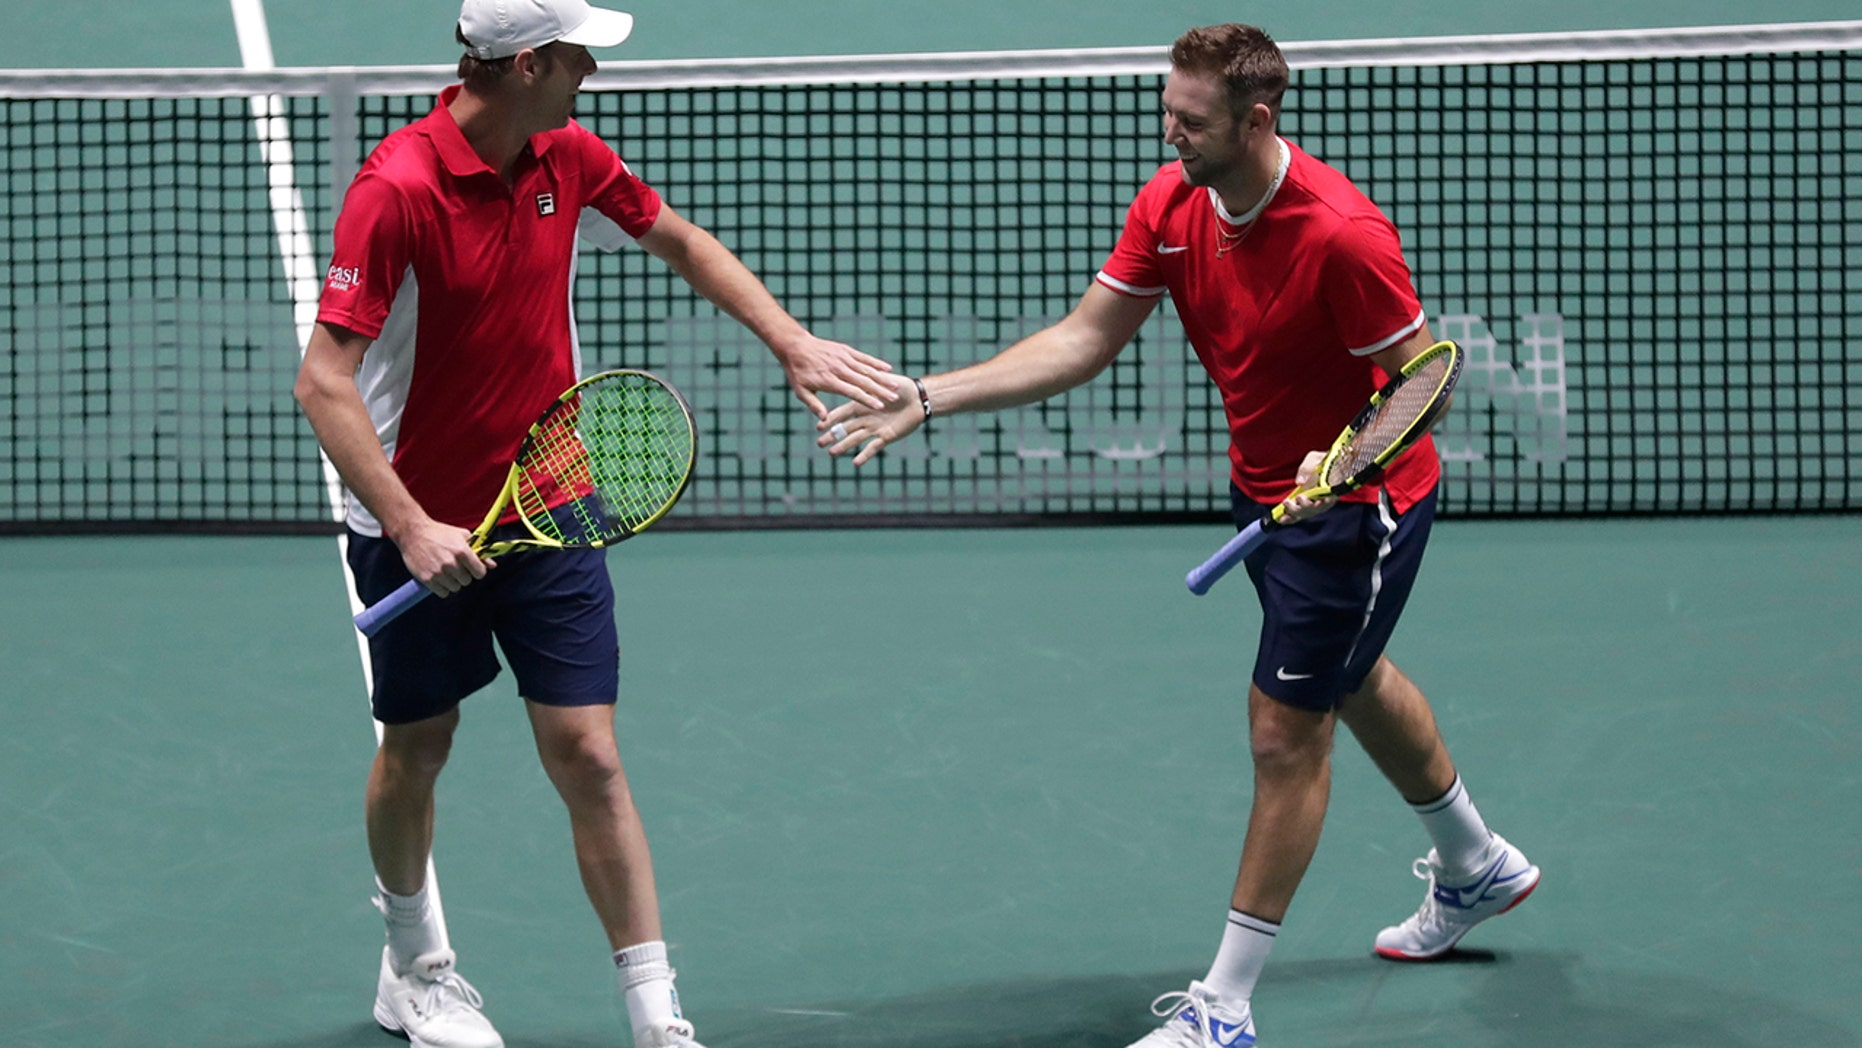 US Sam Querrey, right, and Jack Sock celebrate a point against Italy's Simone Bolelli and Fabio Fognini during their Davis Cup tennis match in Madrid, Spain, Thursday, Nov. 21, 2019. (AP Photo/Manu Fernandez)